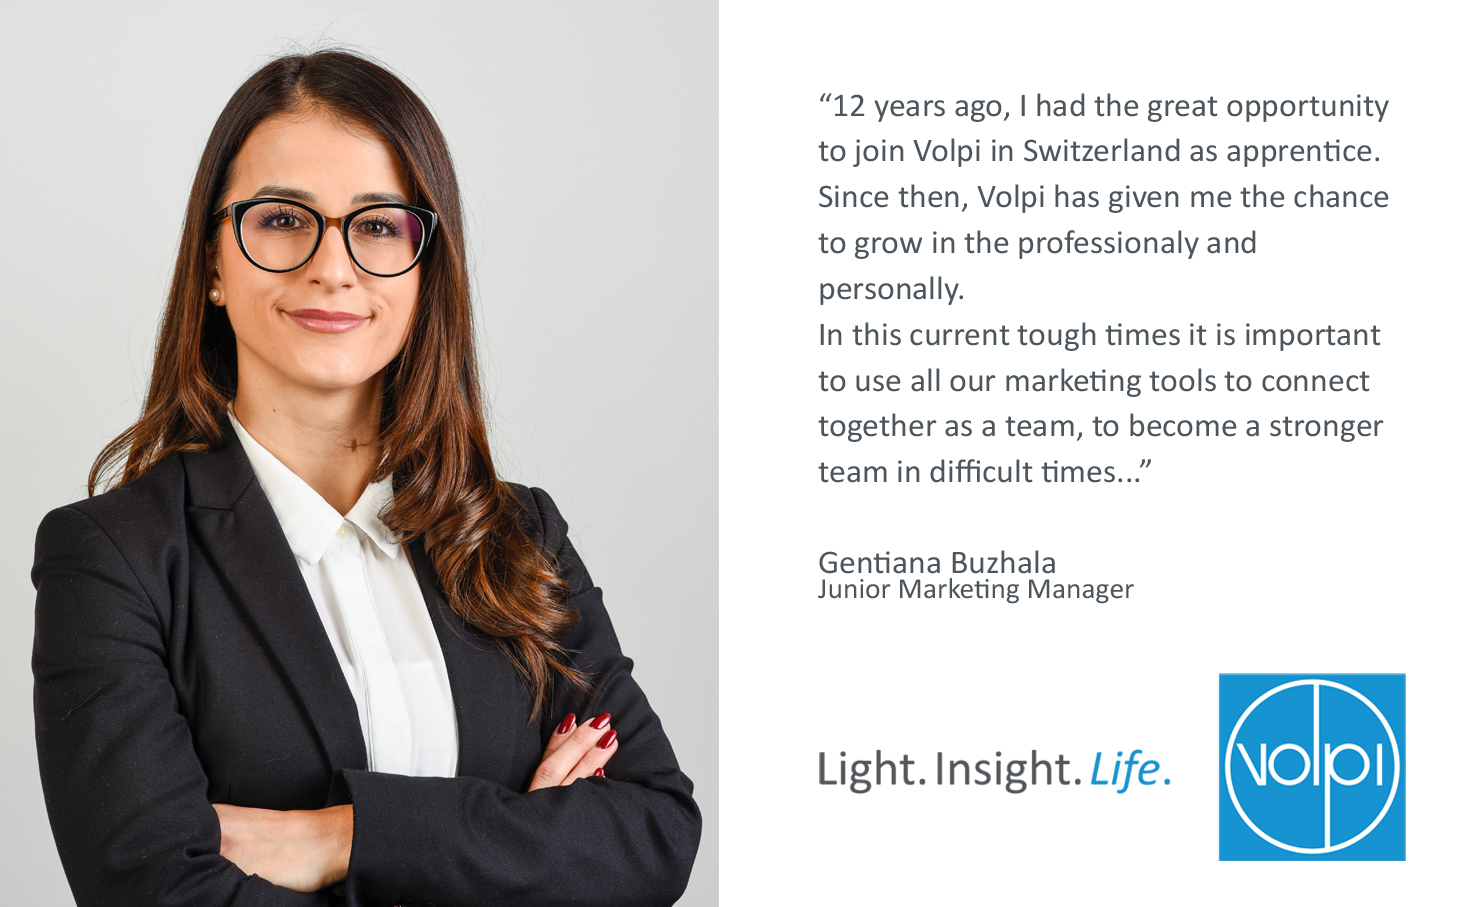 Introducing Gentiana Buzhala, Junior Marketing Manager at Volpi Group